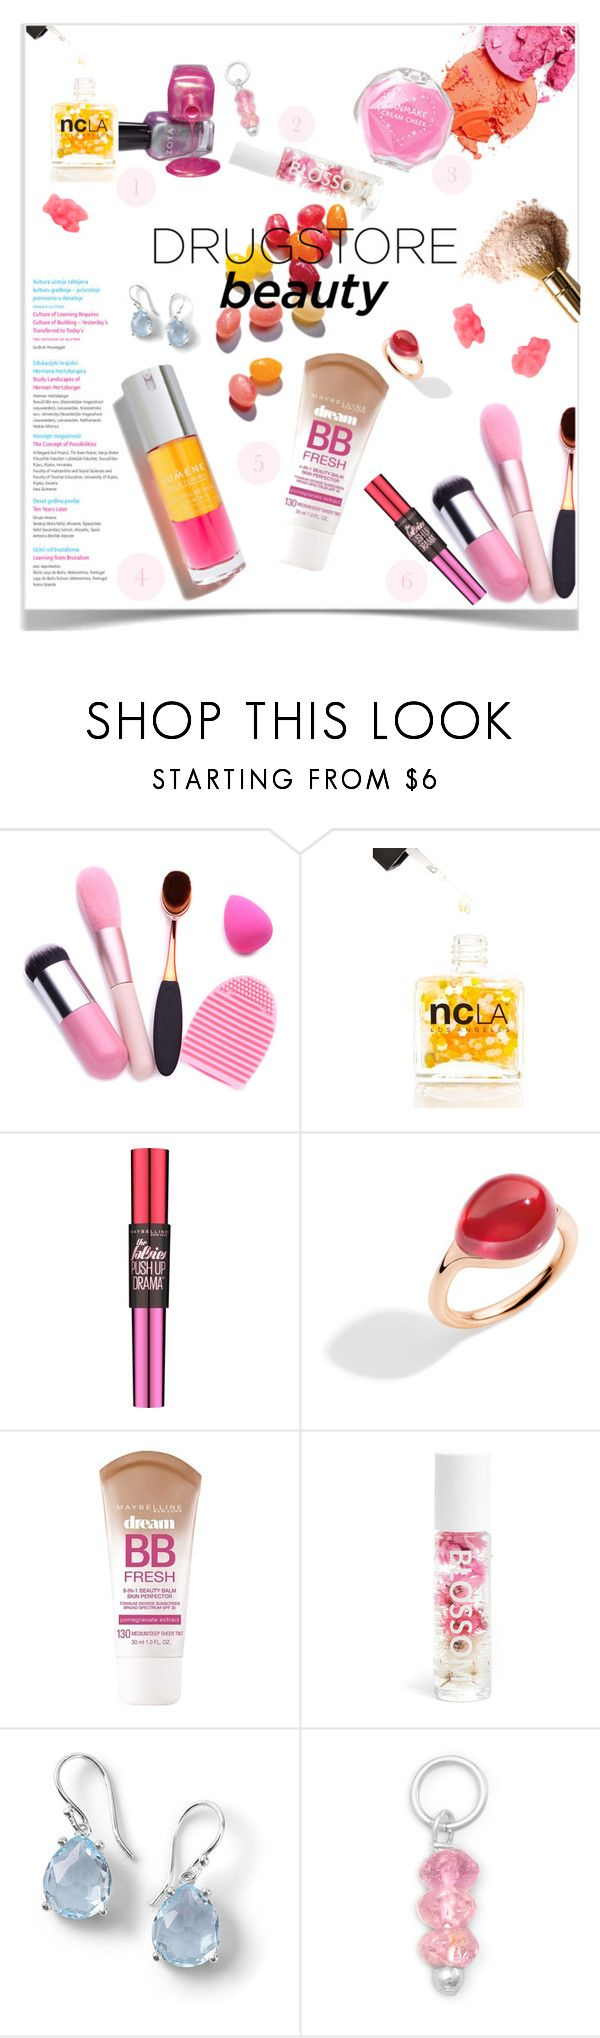 """Untitled #163"" by craftsperson ❤ liked on Polyvore featuring beauty, Oris, ncLA, Maybelline, Pomellato, Blossom, Ippolita and drugstorebeauty"